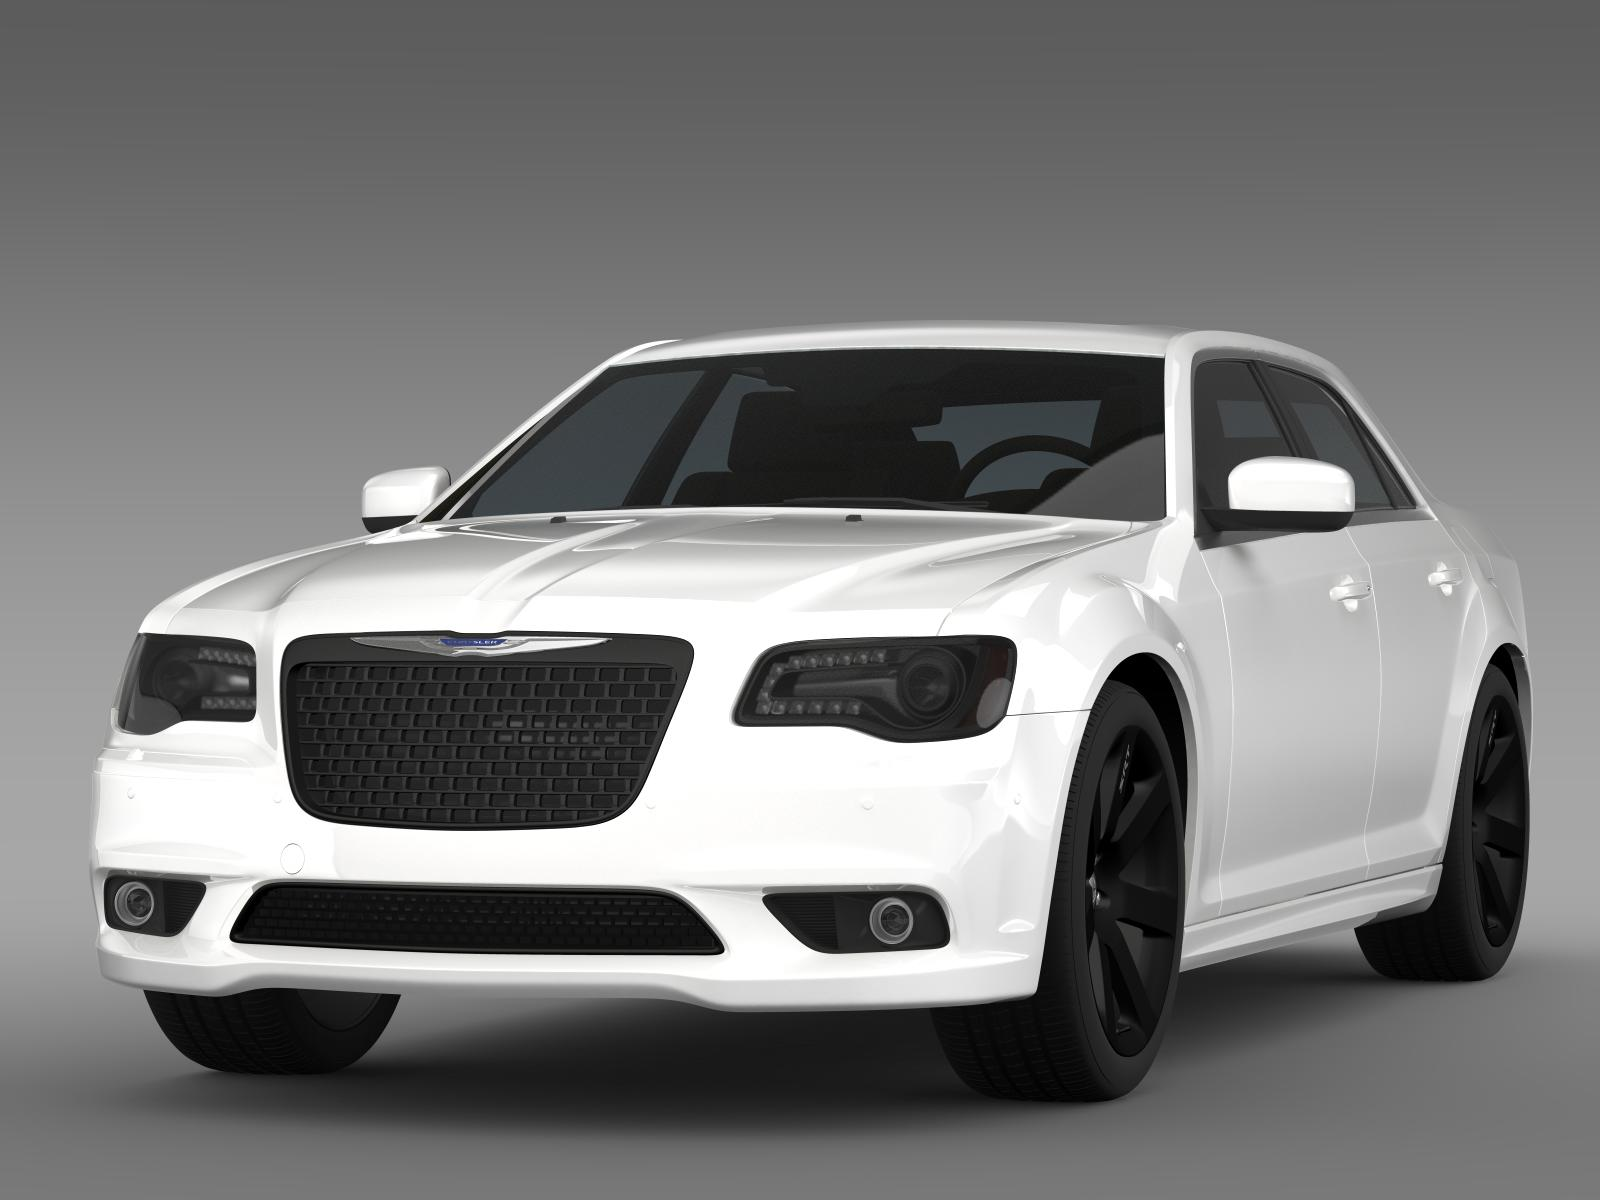 chrysler 300 srt8 2012 3d model 3ds max fbx c4d lwo ma mb hrc xsi obj 207956